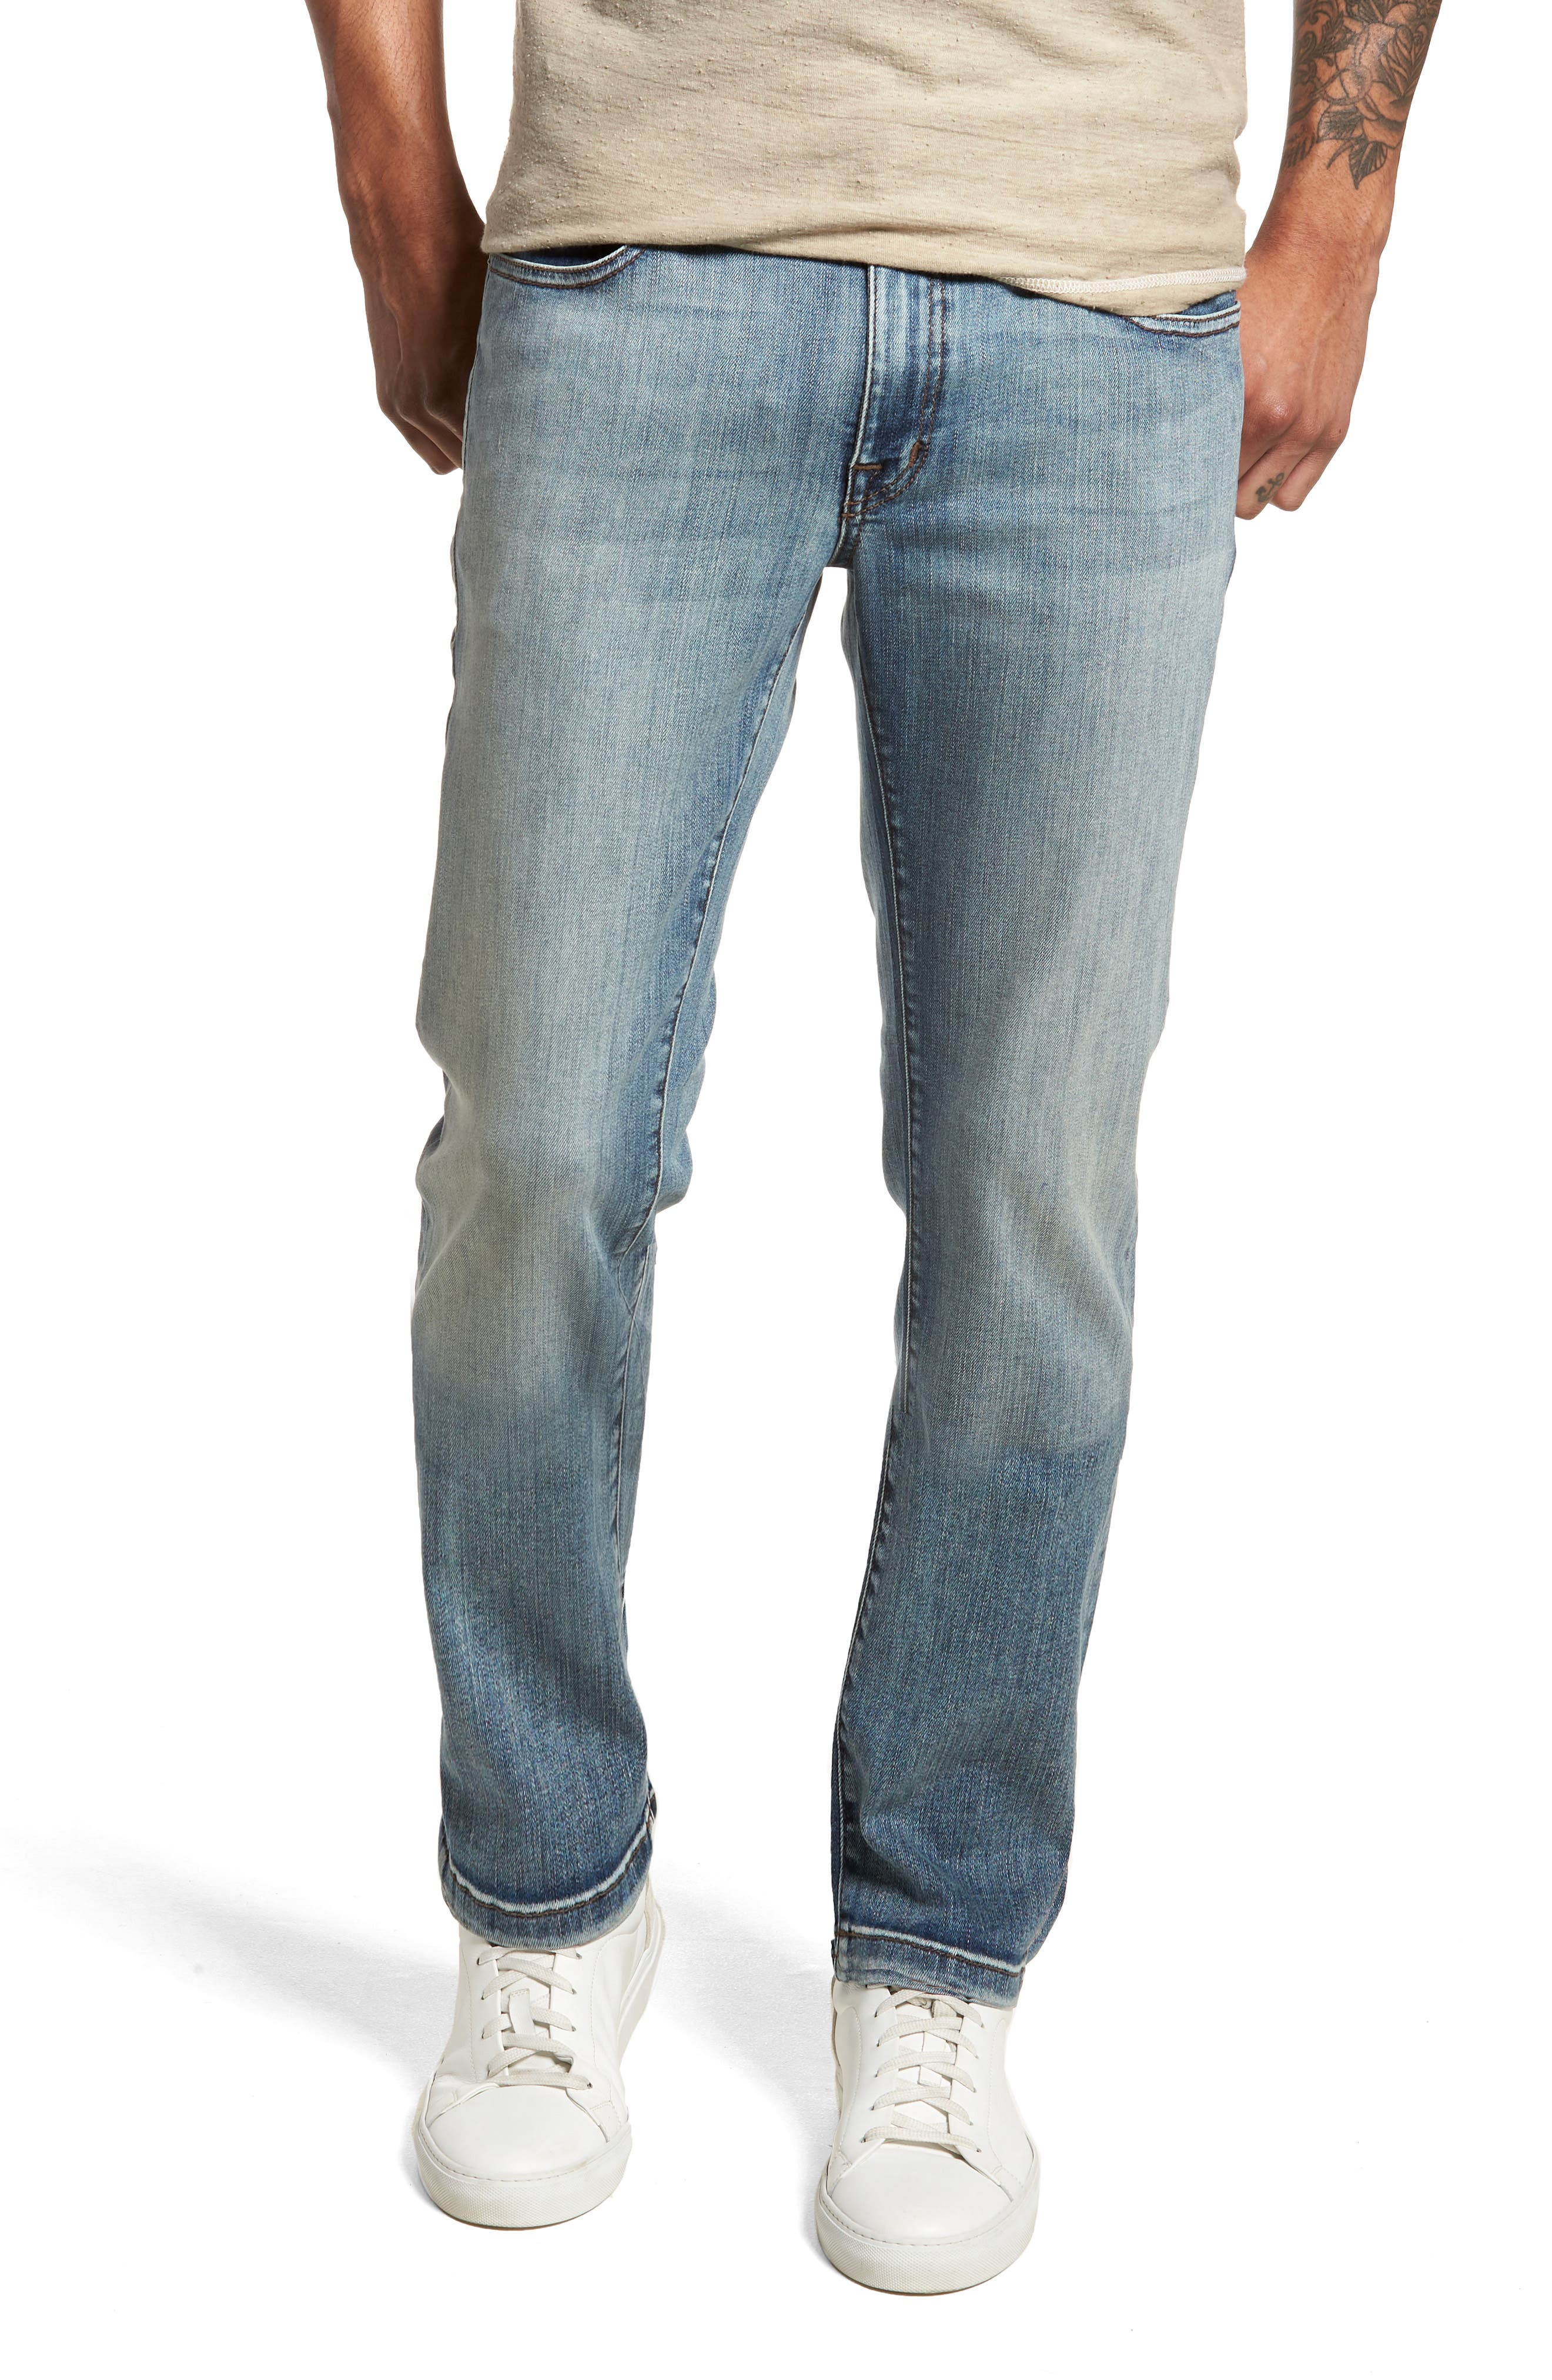 Jimmy Slim Fit Jeans,                             Main thumbnail 1, color,                             400